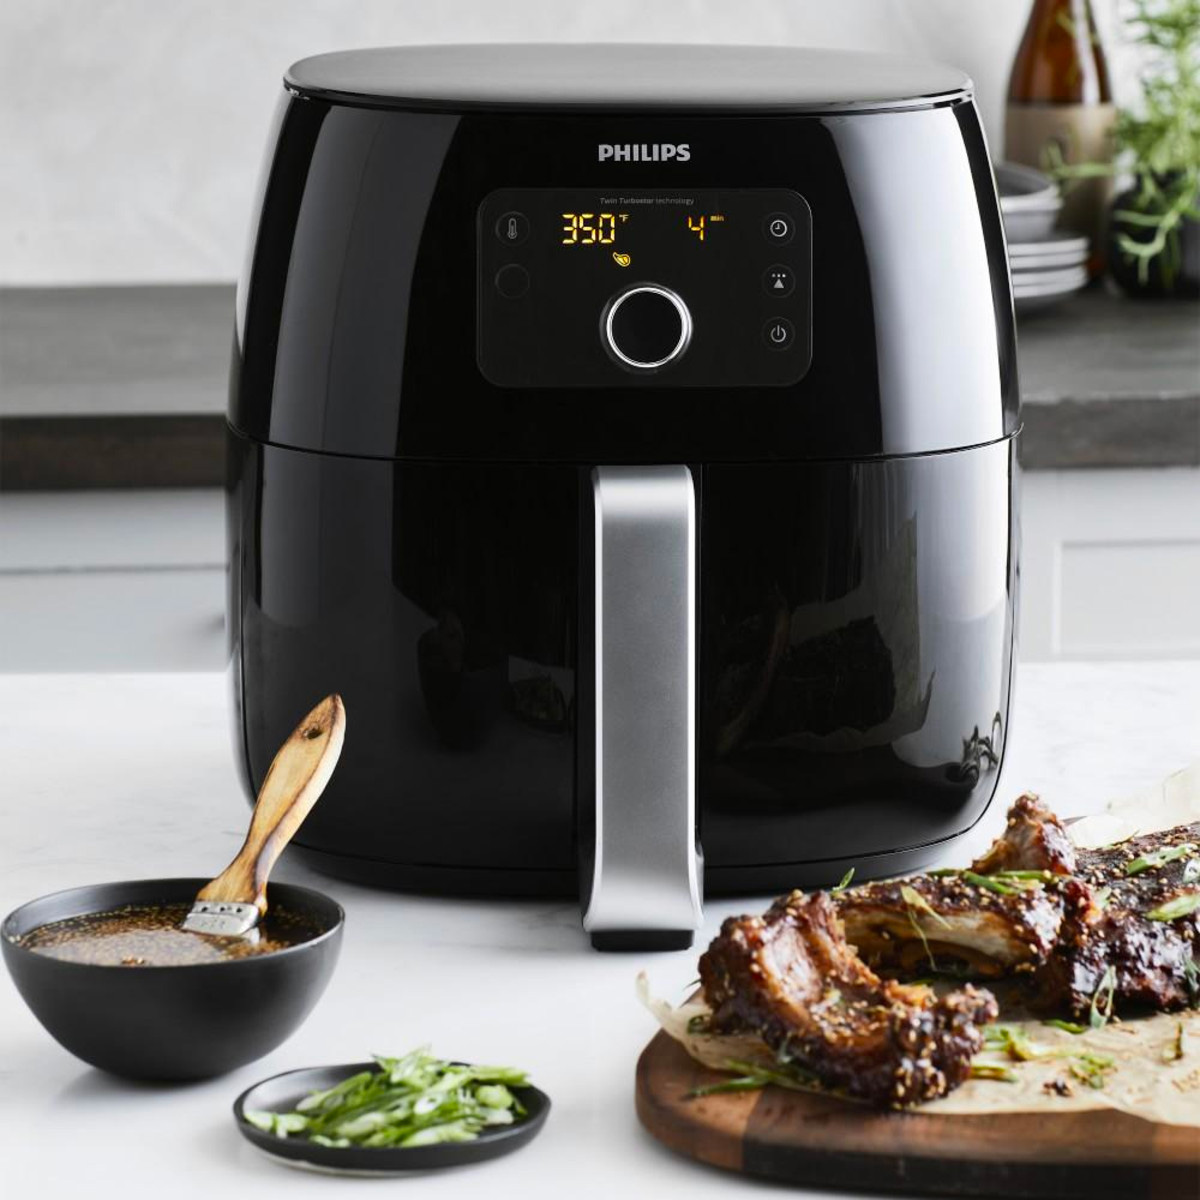 Philips' AirFryerXXL Makes Healthier Eating Easy at werd.com